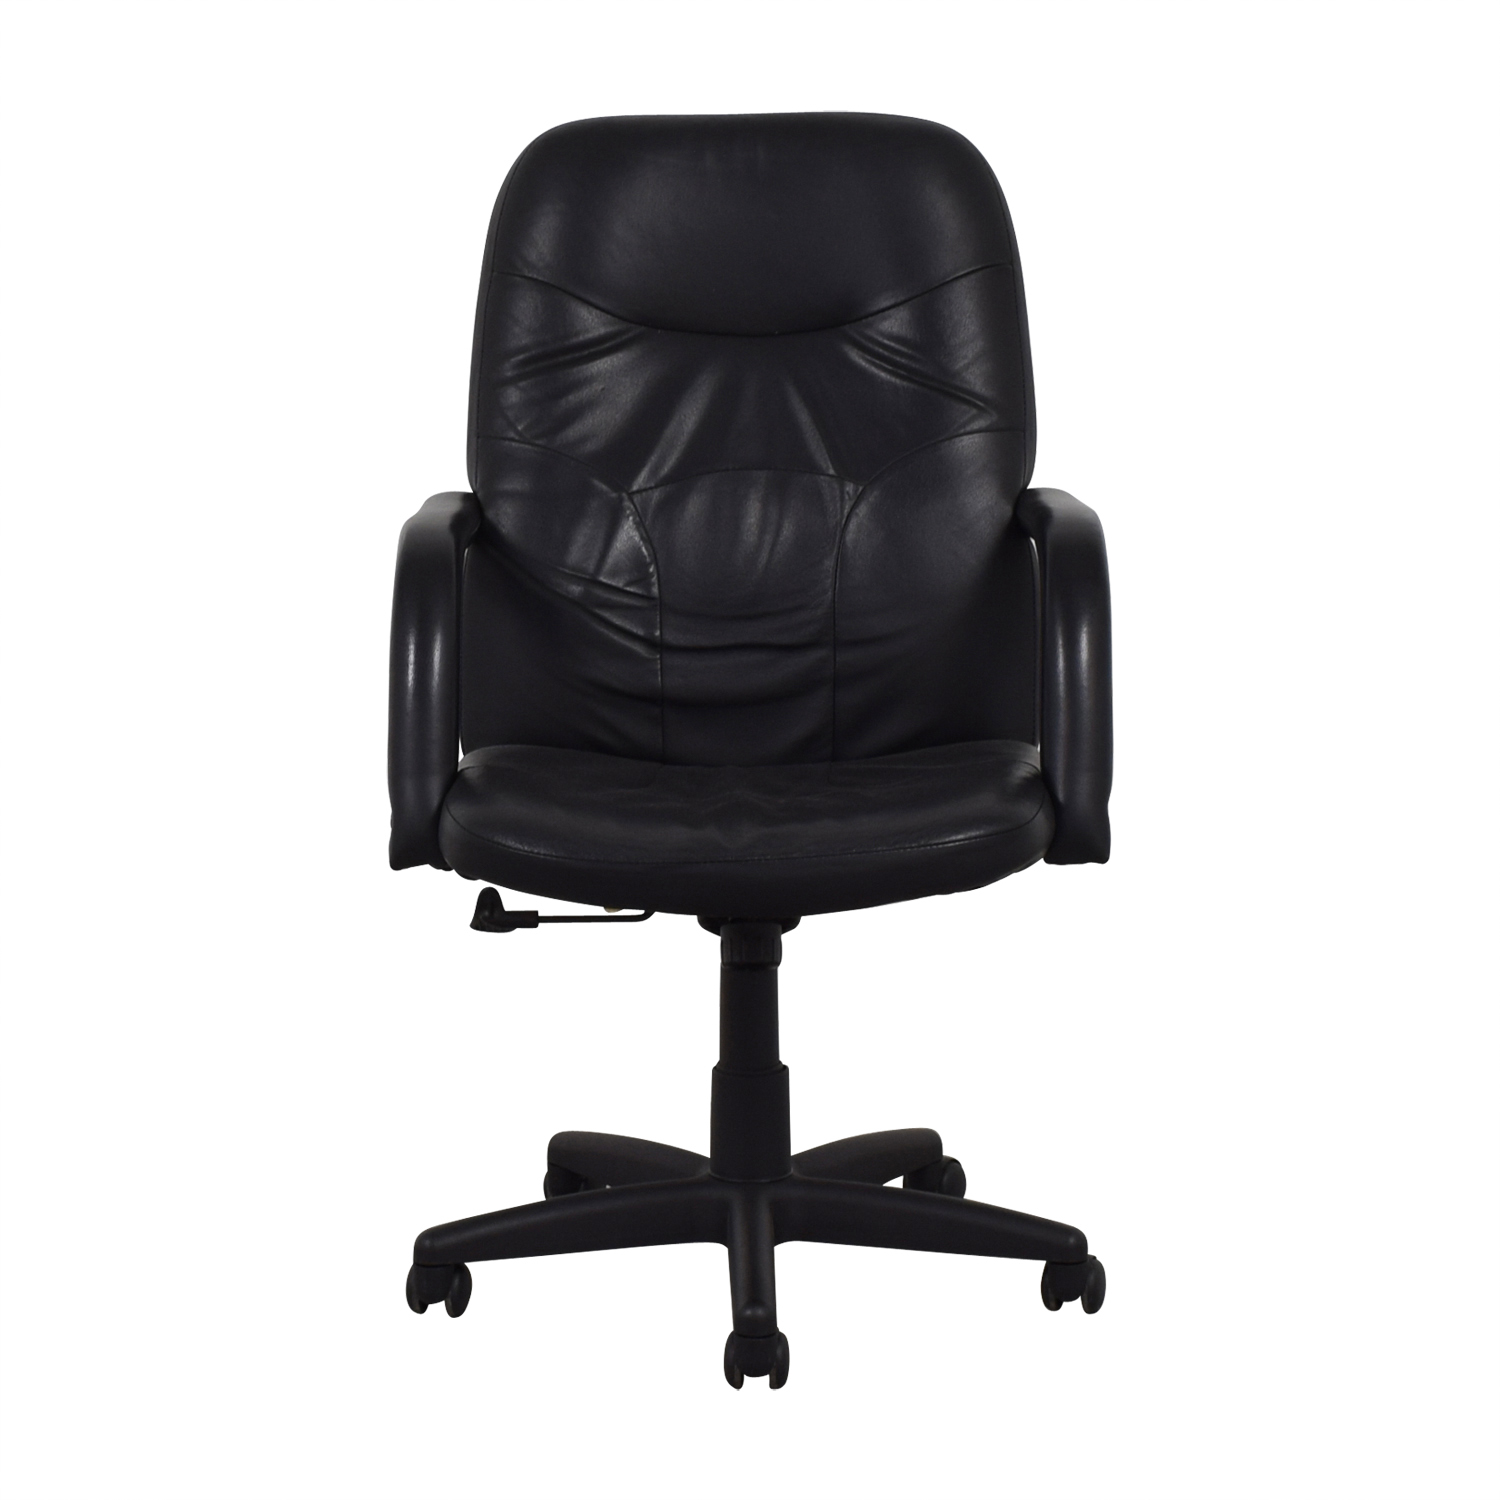 bceb1794906 87% OFF - Raymour   Flanigan Raymour   Flanigan Black Office Chair ...